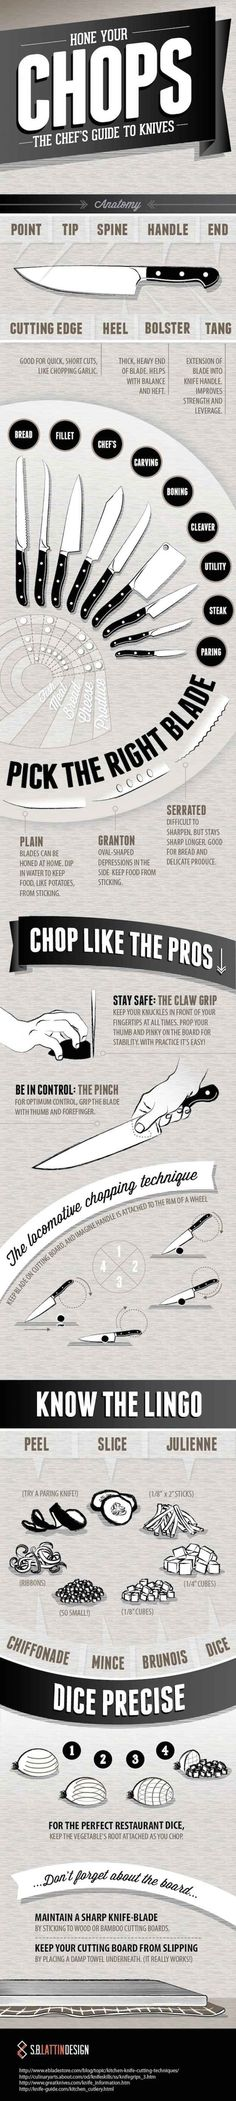 For knife skills.